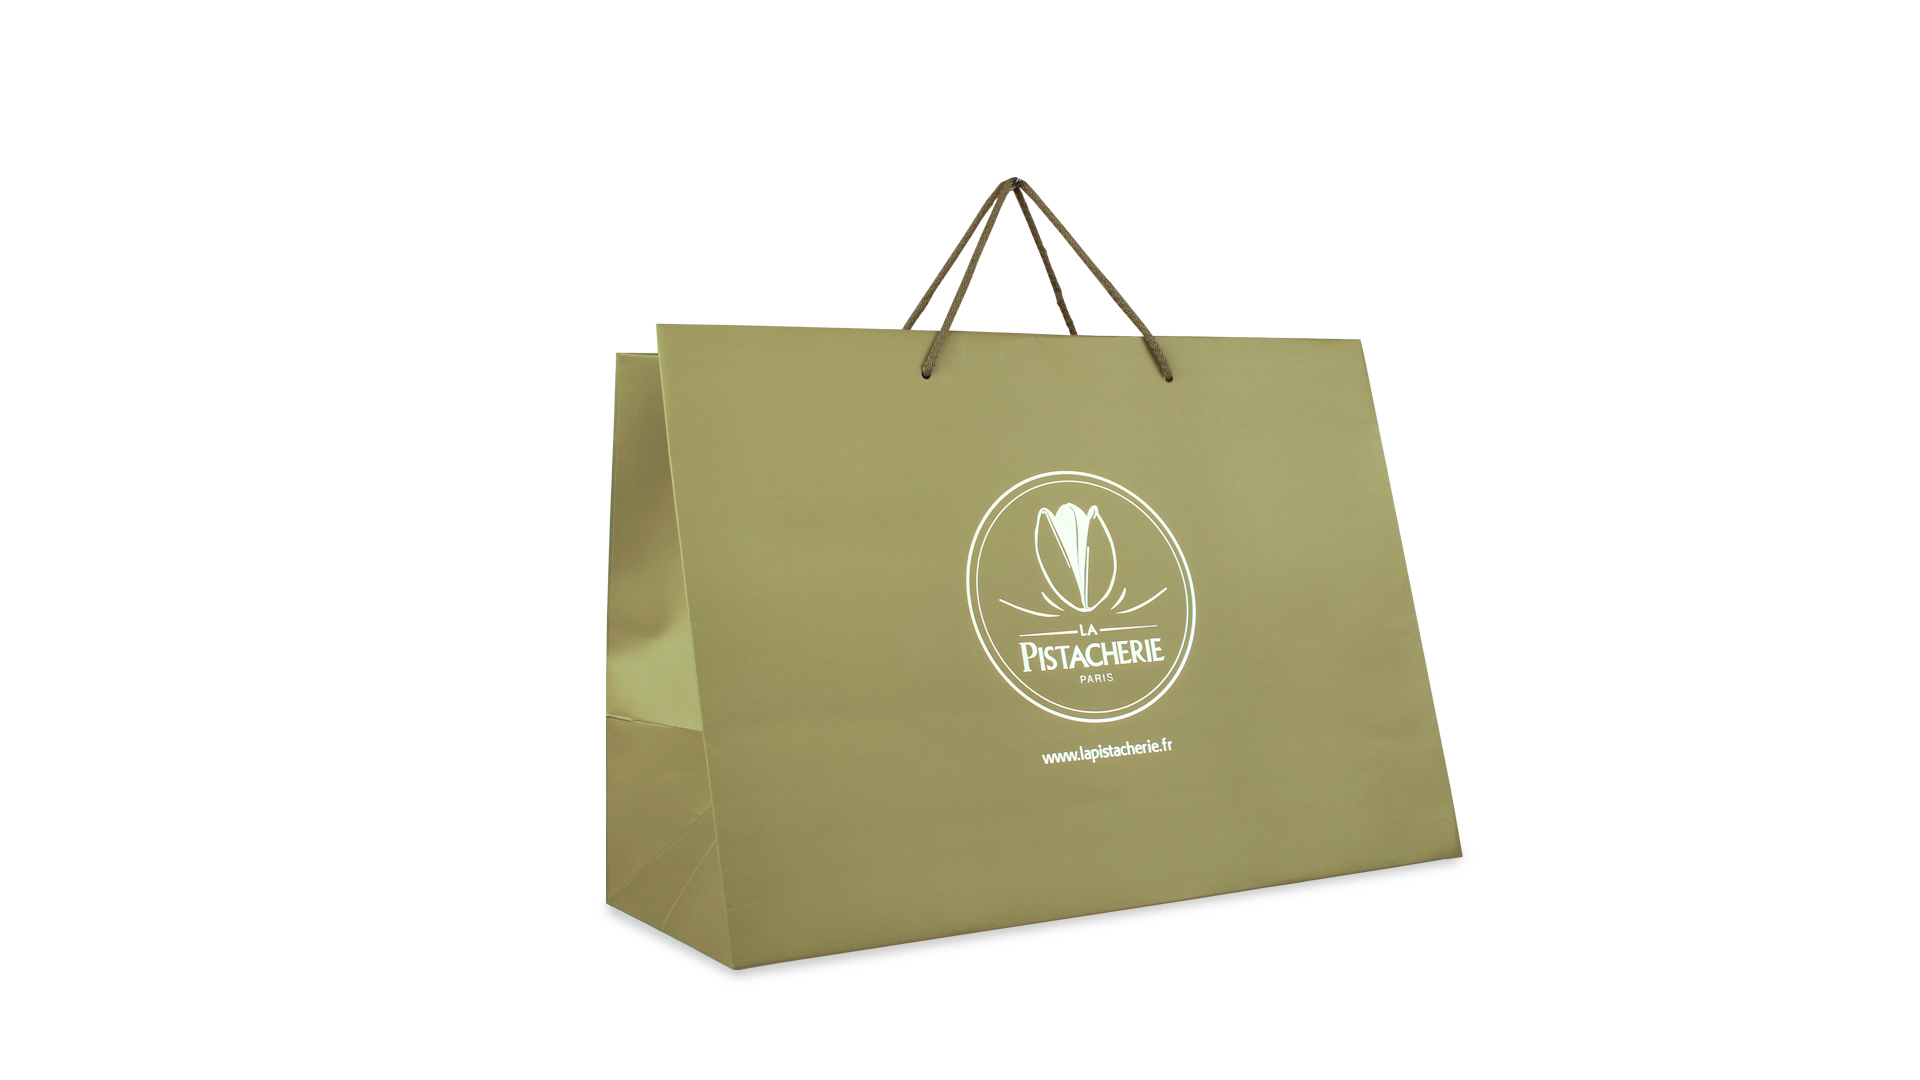 1 | La Pistaccherie | Shopping bag